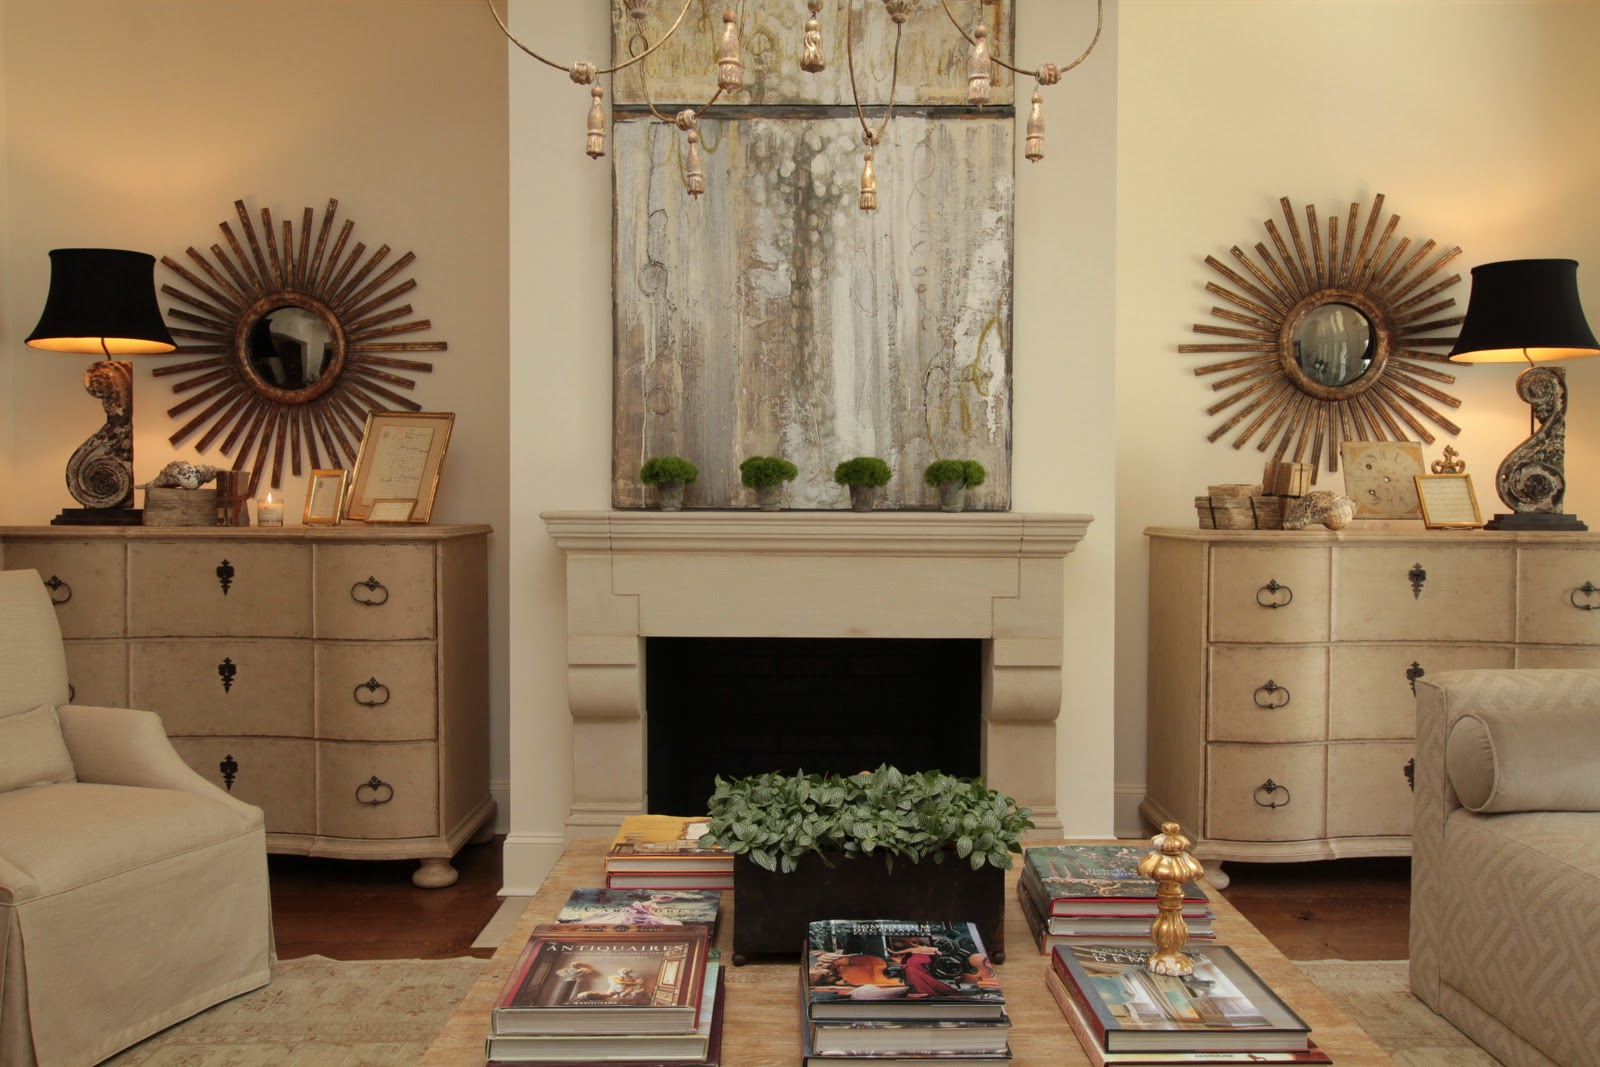 Cancer showhouse Rescue Restore Redecorate